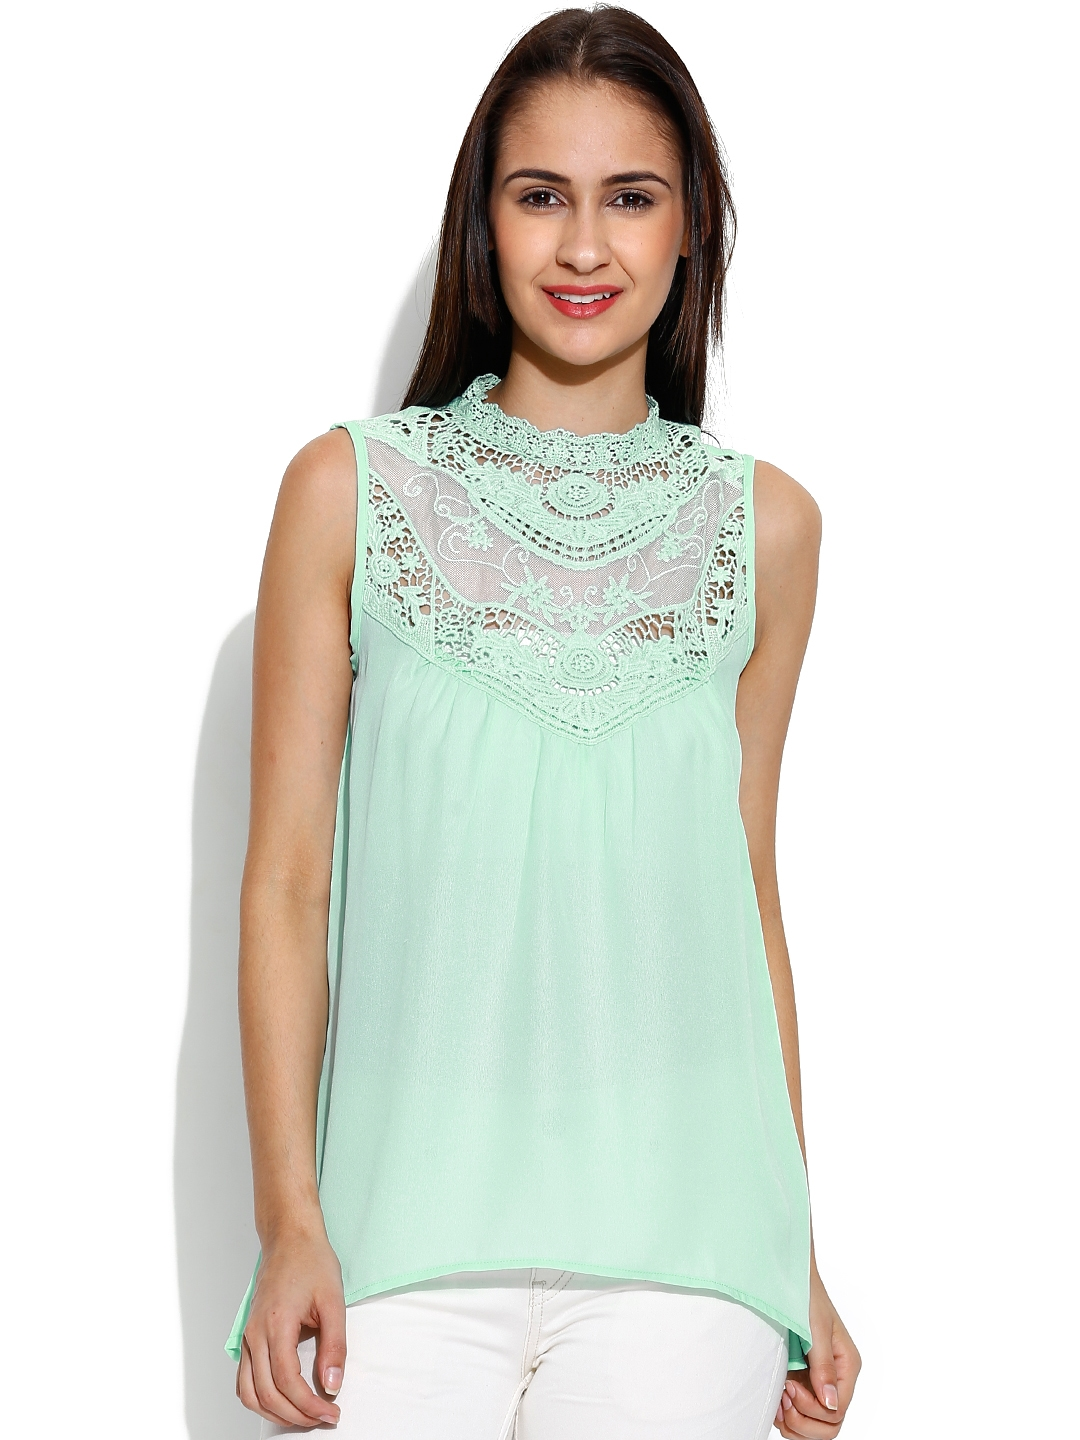 c26b416b2a24a4 Buy Envy Me Green Crochet Sheer Top - Tops for Women 945172 | Myntra